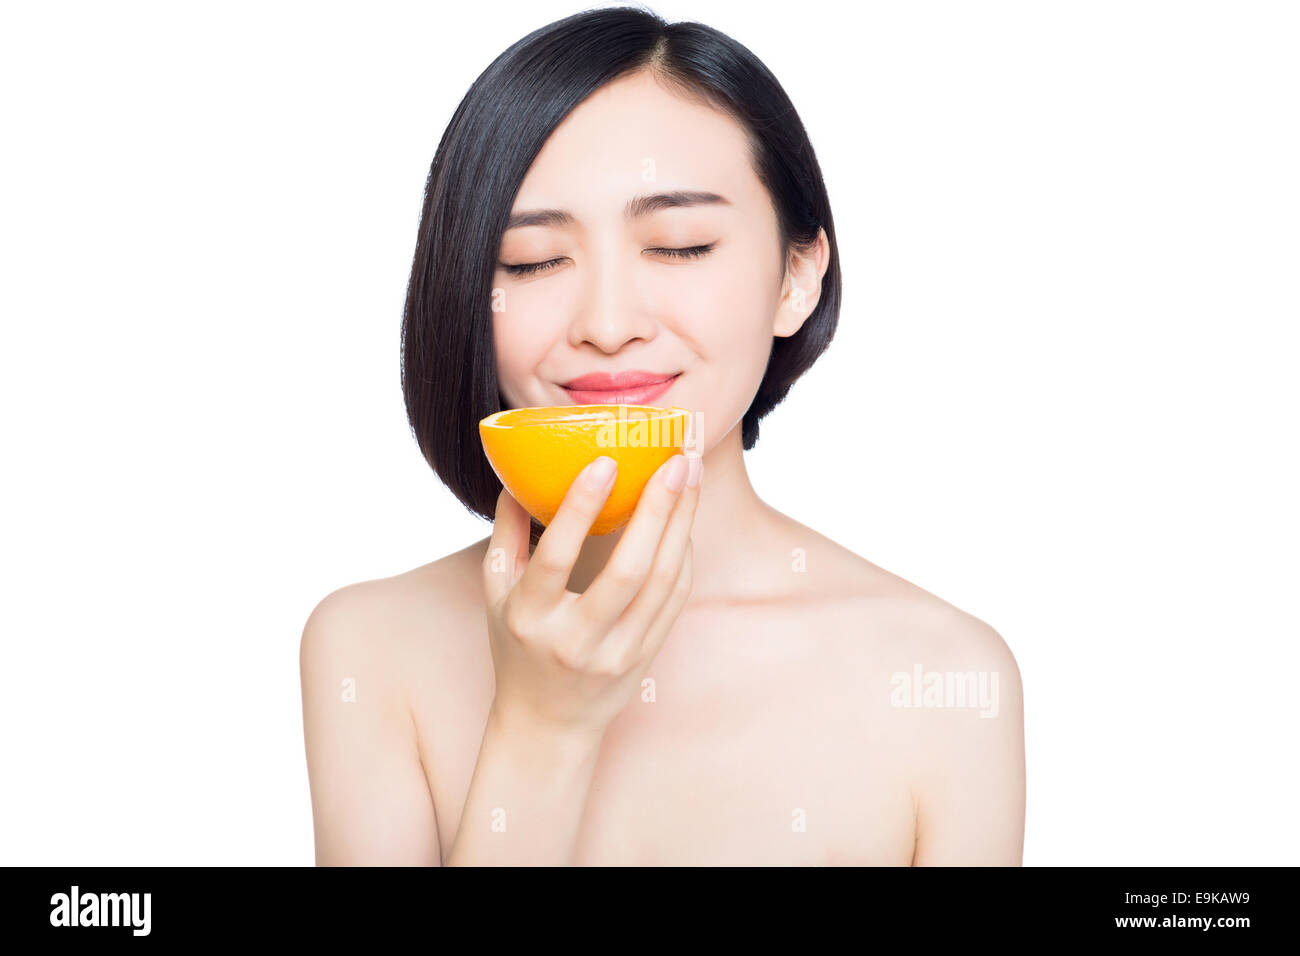 young woman with oranges in her hands, white background - Stock Image